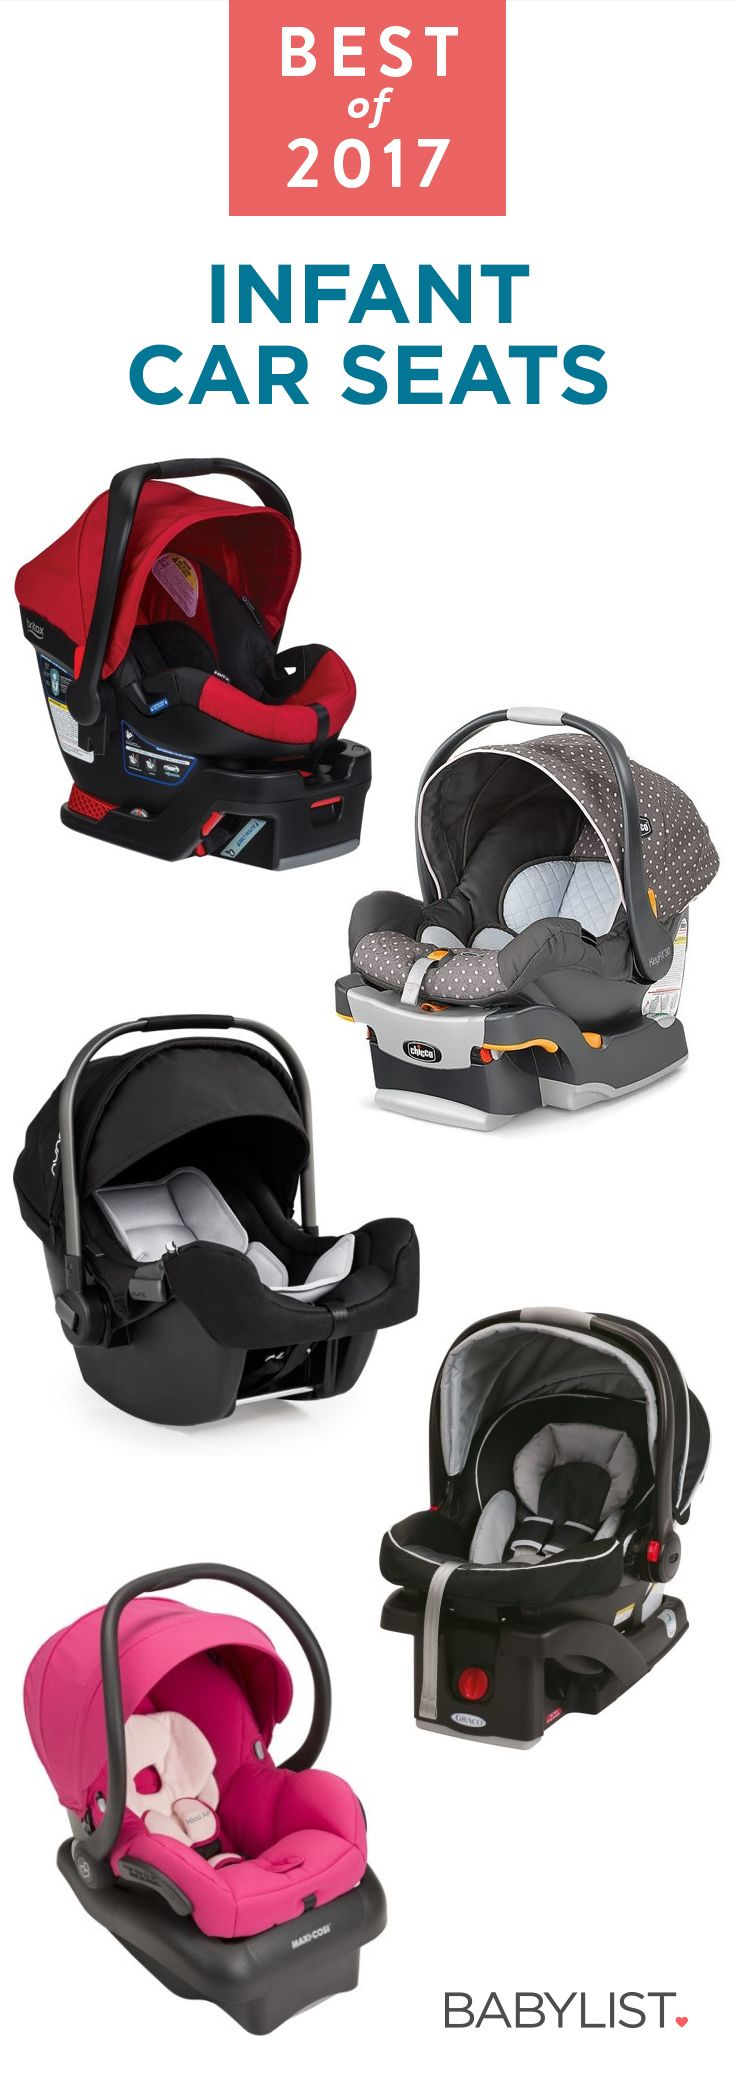 25 best car seats ideas on pinterest baby girl car seats family cars and car seat pad